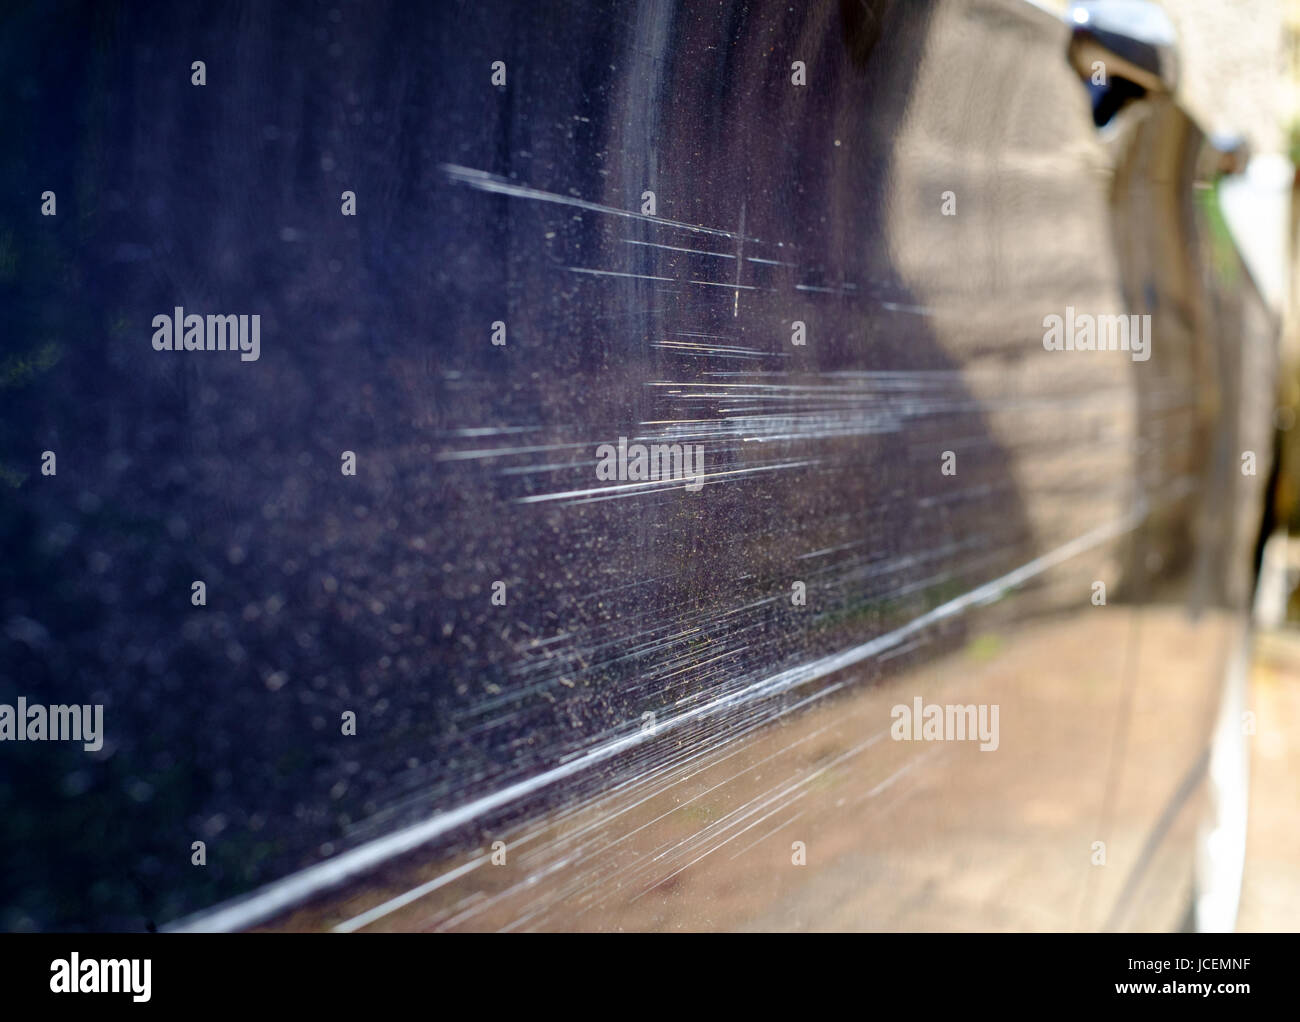 Scratches and minor dents on door panel of blue coloured road car. - Stock Image